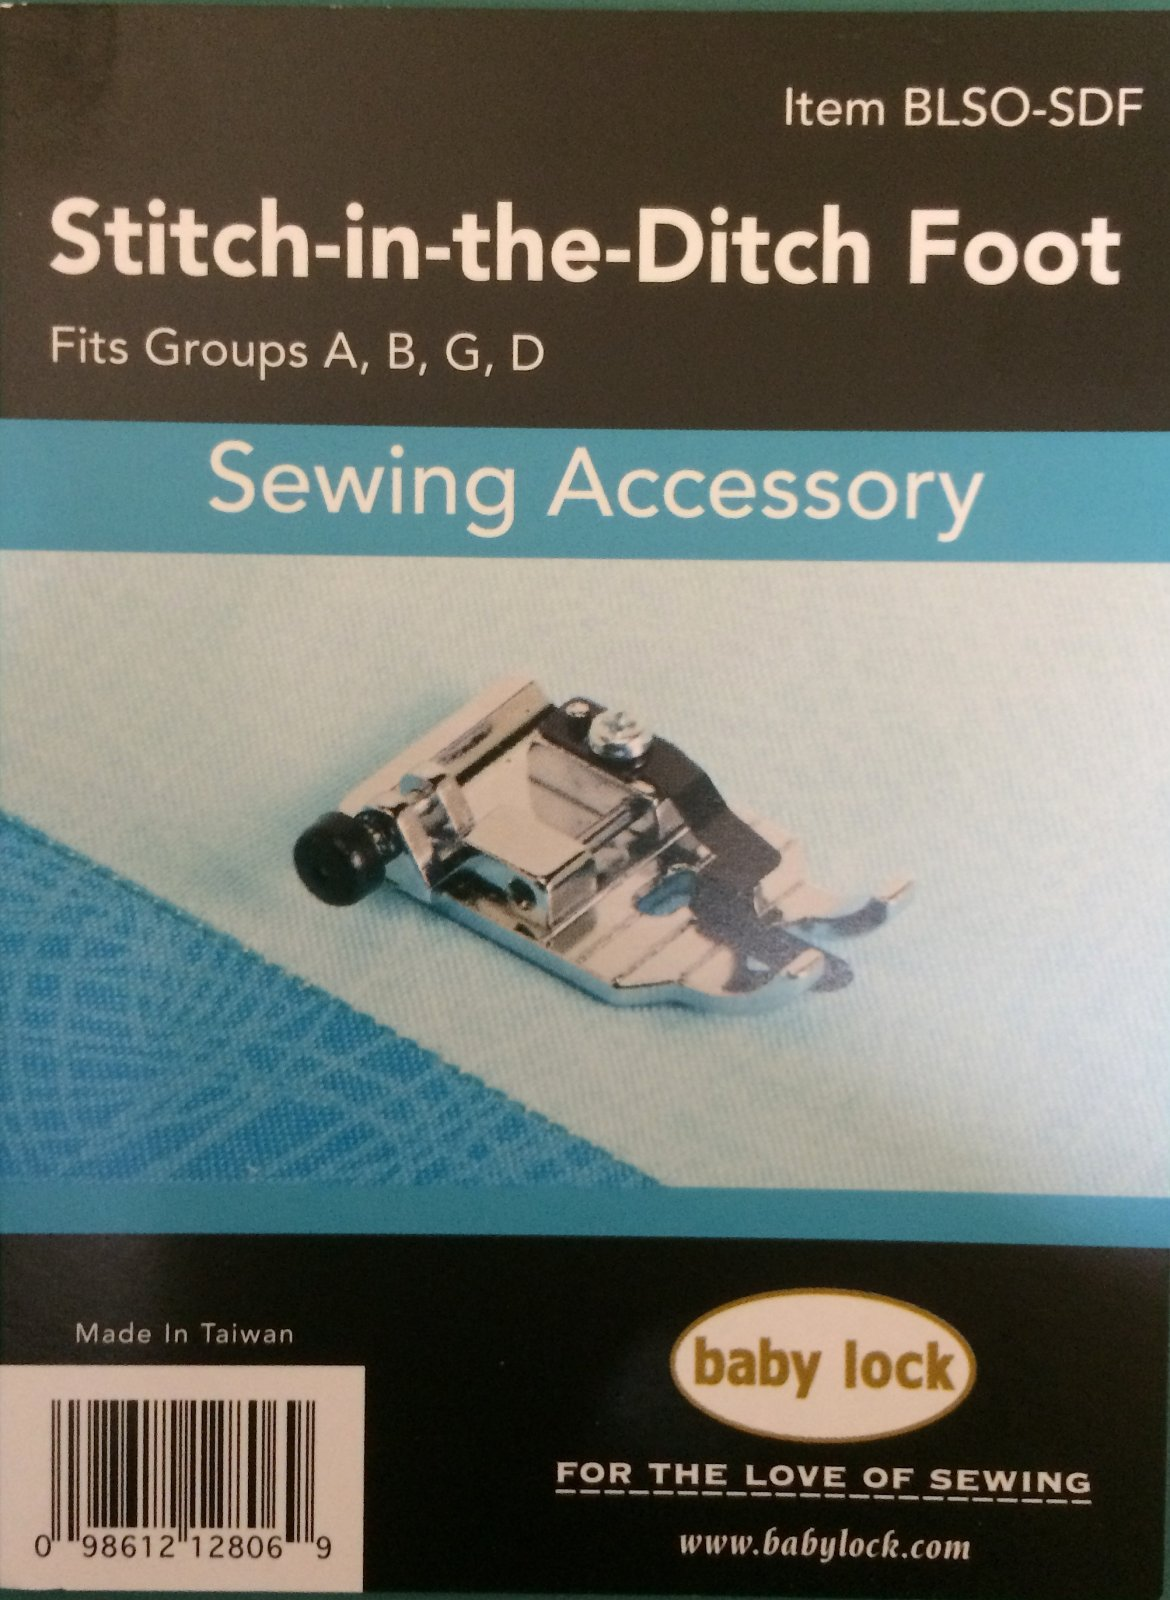 Stitch-In-The-Ditch Foot